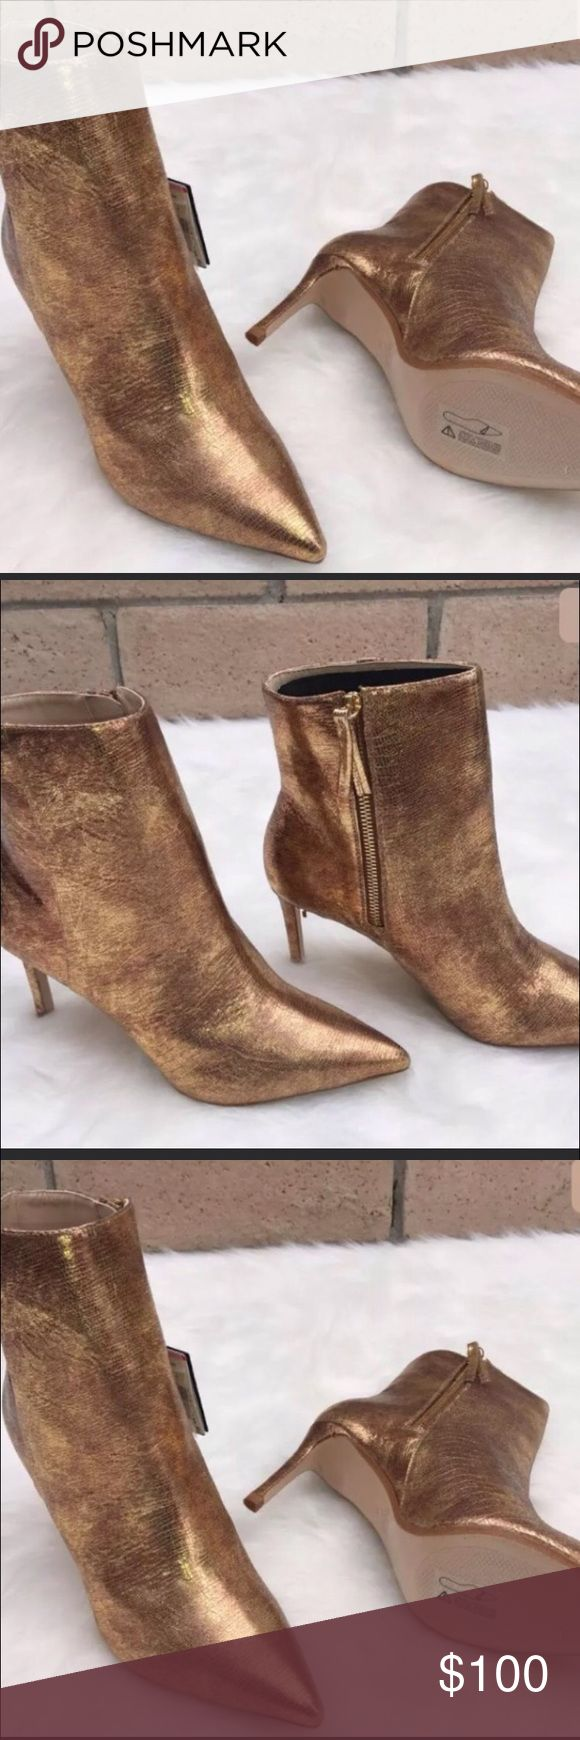 17 best ideas about Gold Ankle Boots on Pinterest | Pretty heels ...